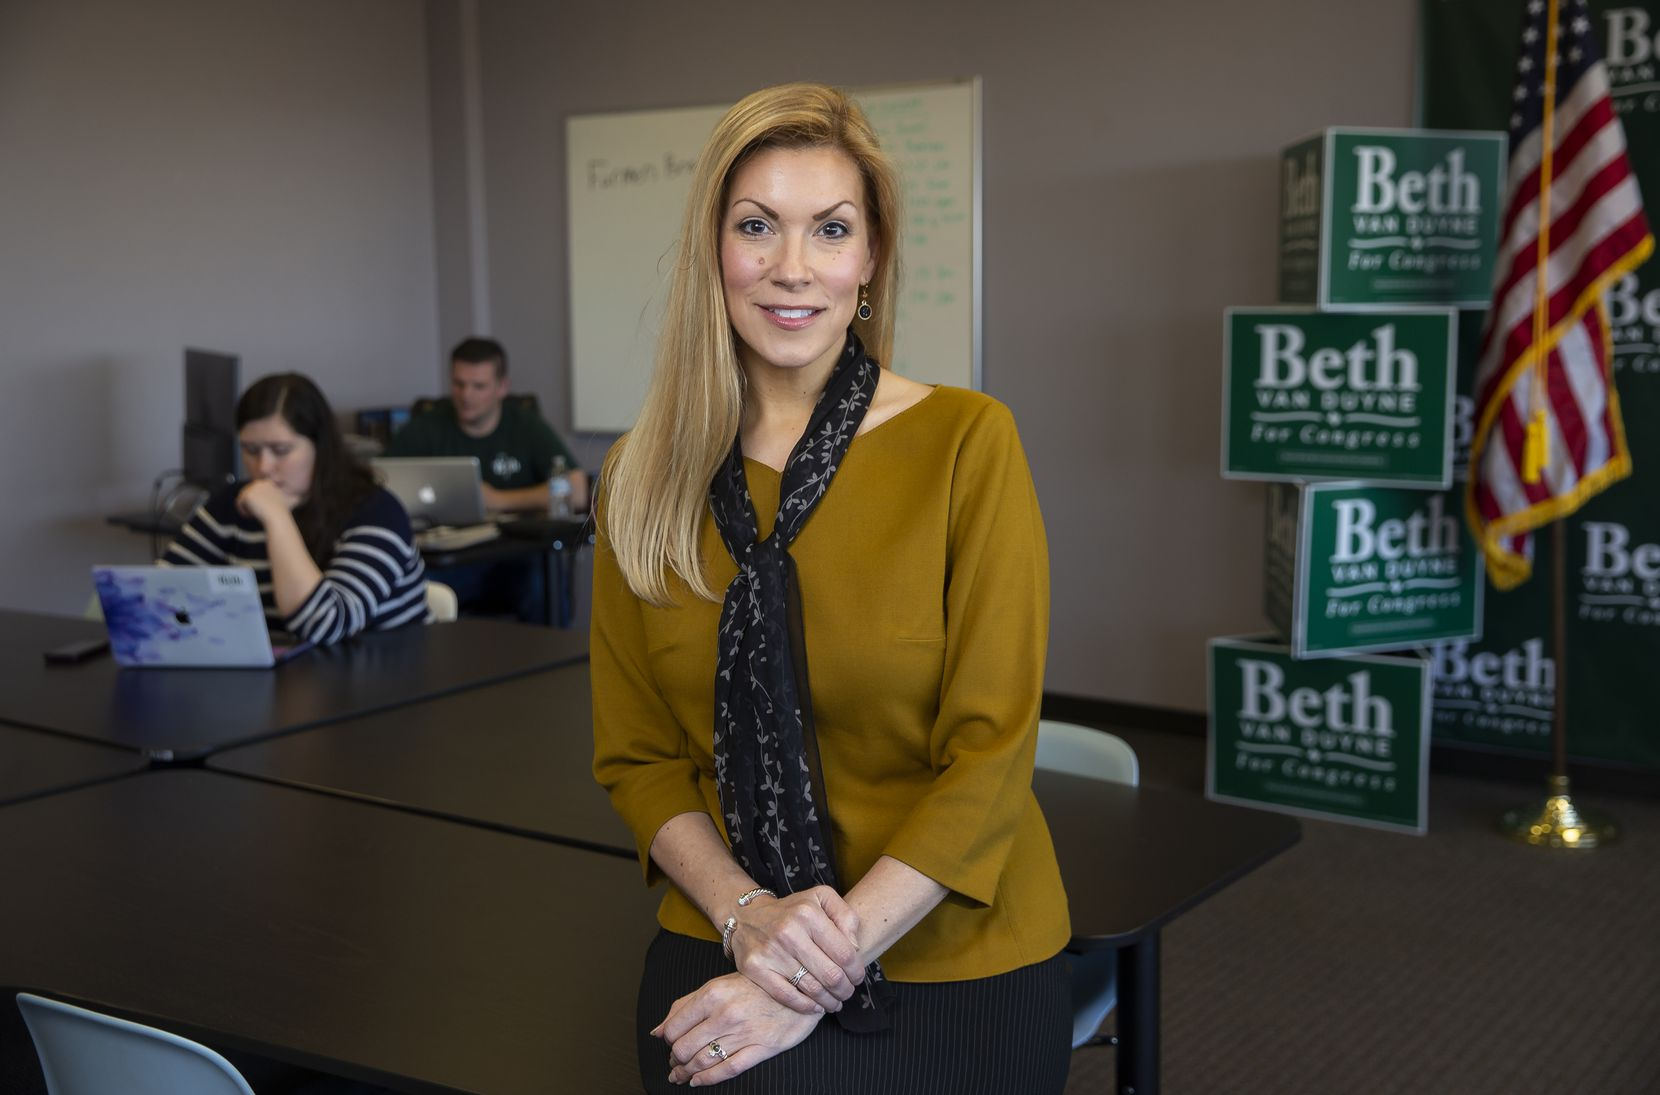 Beth Van Duyne, the former mayor of Irving, who is running for Congressional District 24 poses for a photo at her campaign headquarters on Jan. 24, 2020 in Grapevine. (Juan Figueroa/ The Dallas Morning News)